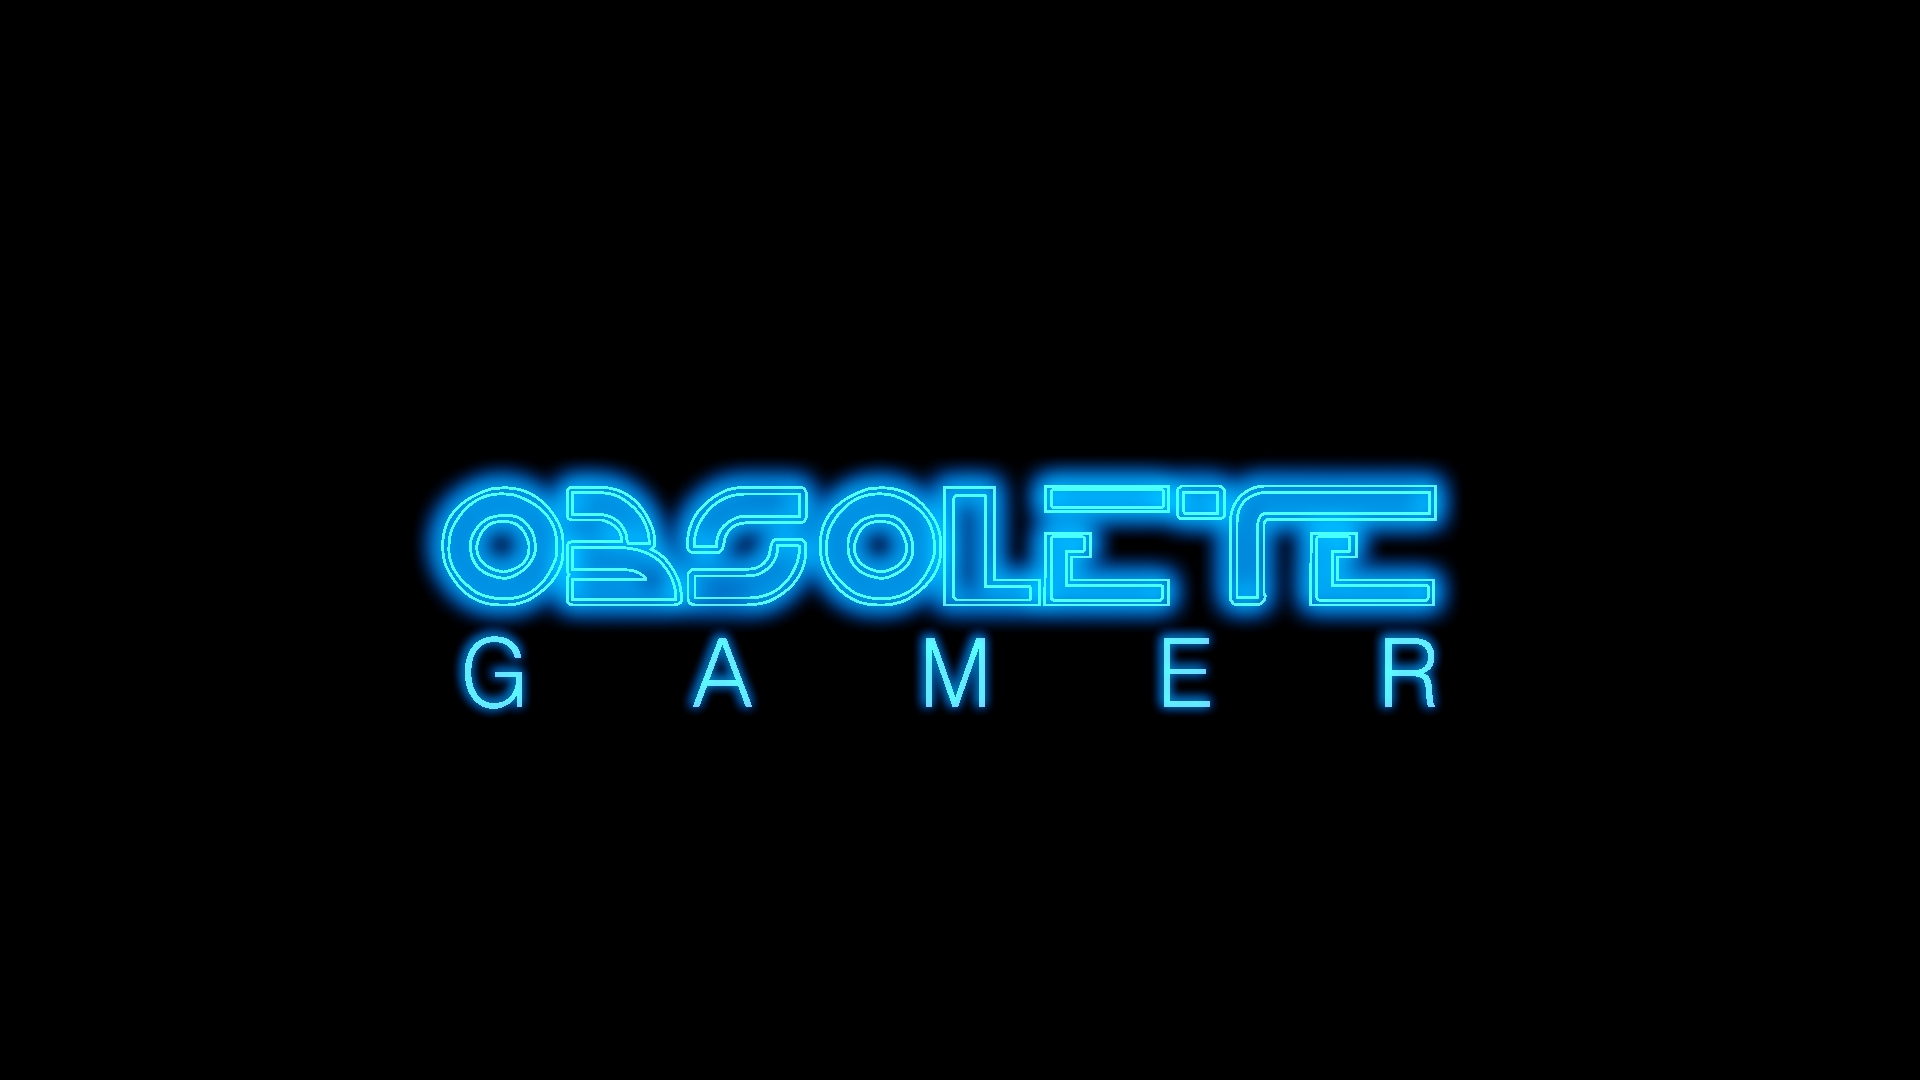 What I've learned from Obsolete Gamer